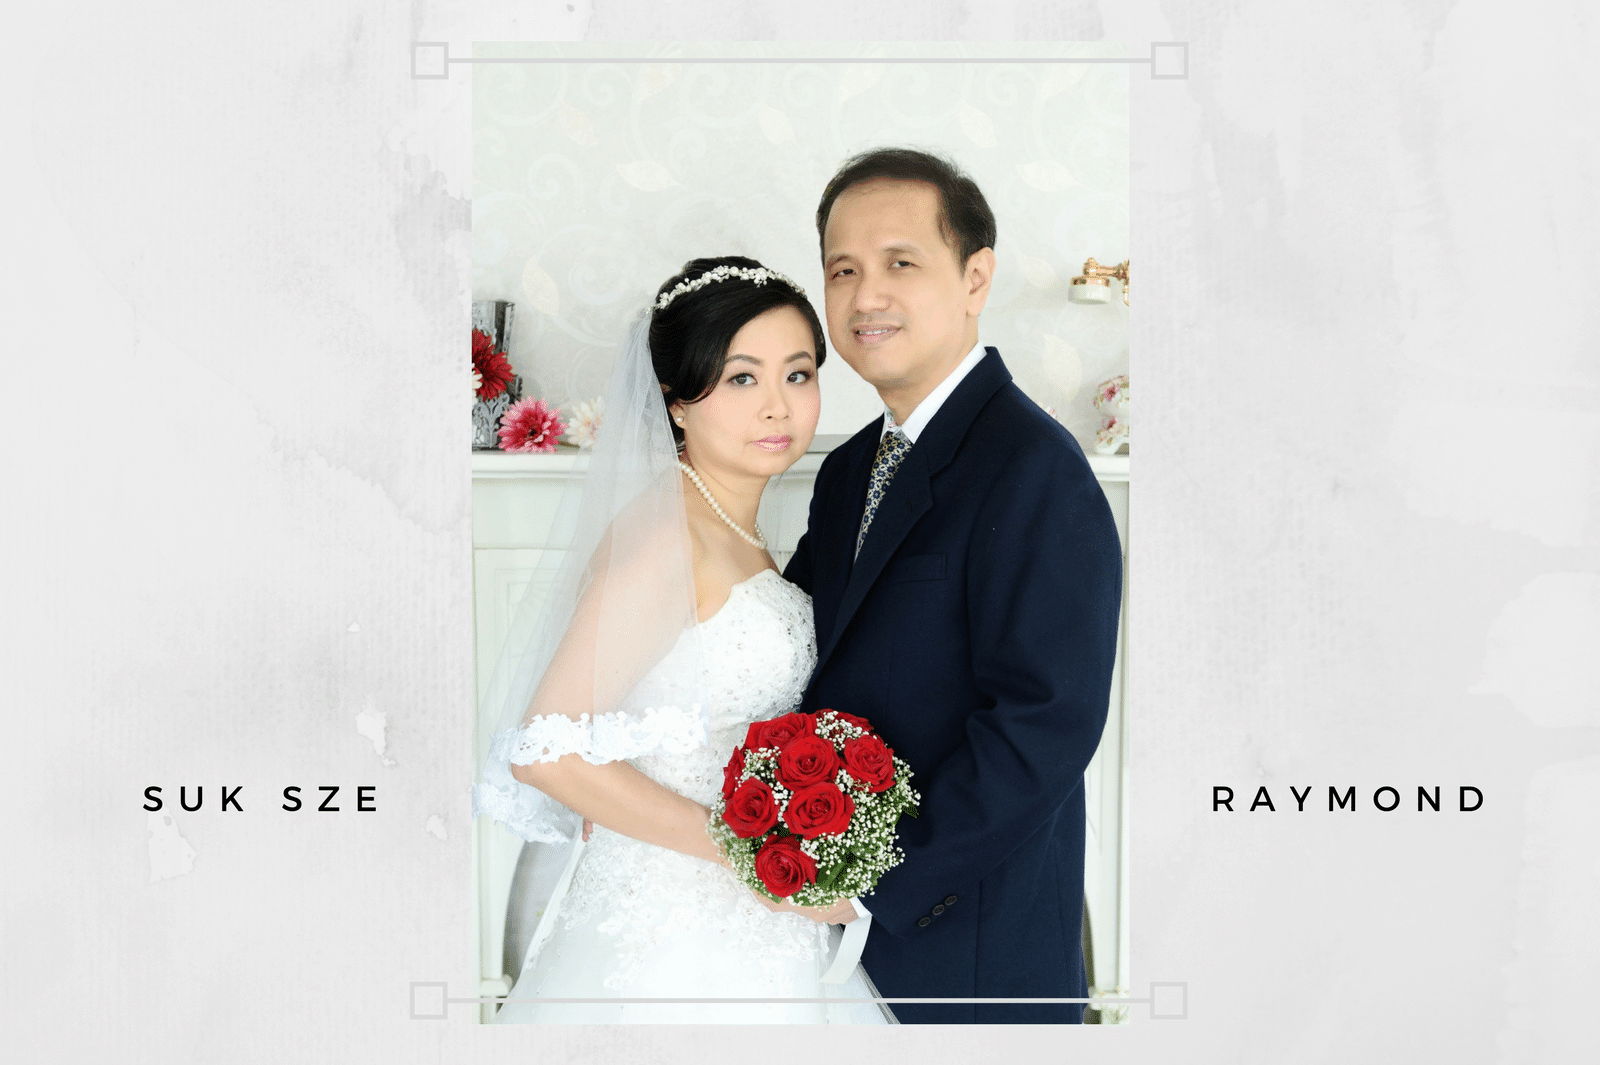 Raymond and Suk Sze